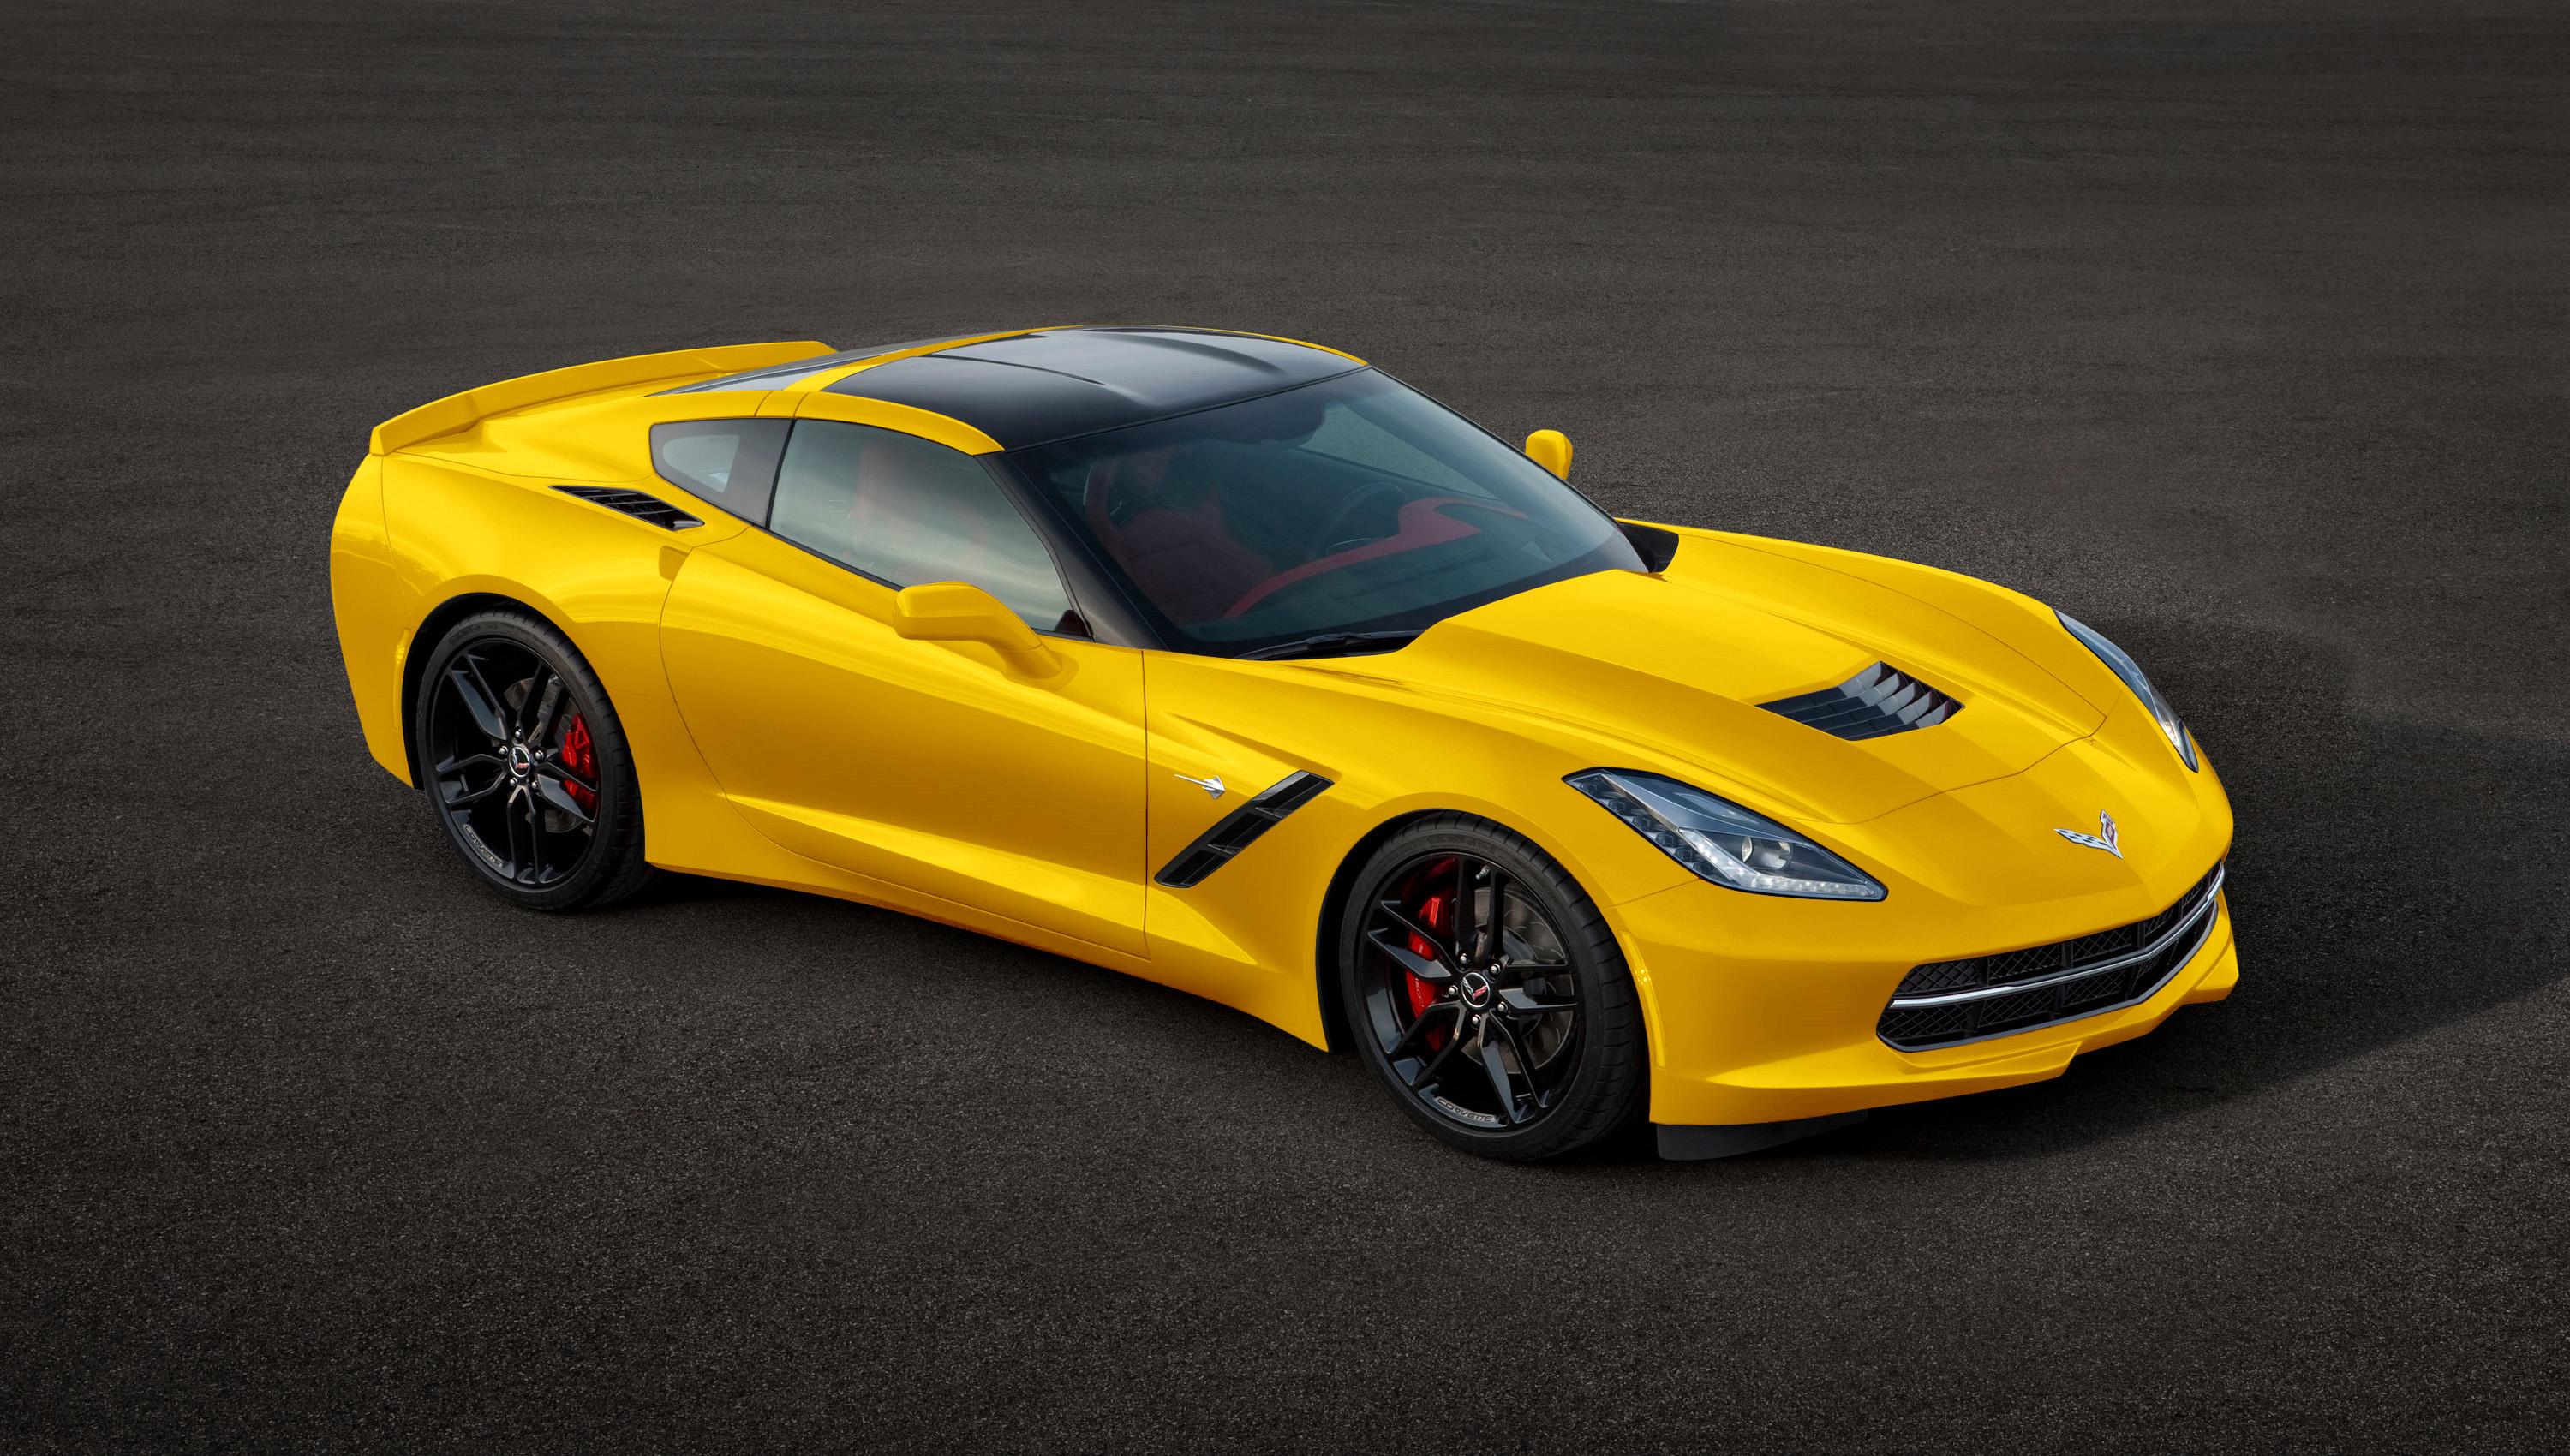 corvette c7 stingray d j un exemplaire accident. Black Bedroom Furniture Sets. Home Design Ideas